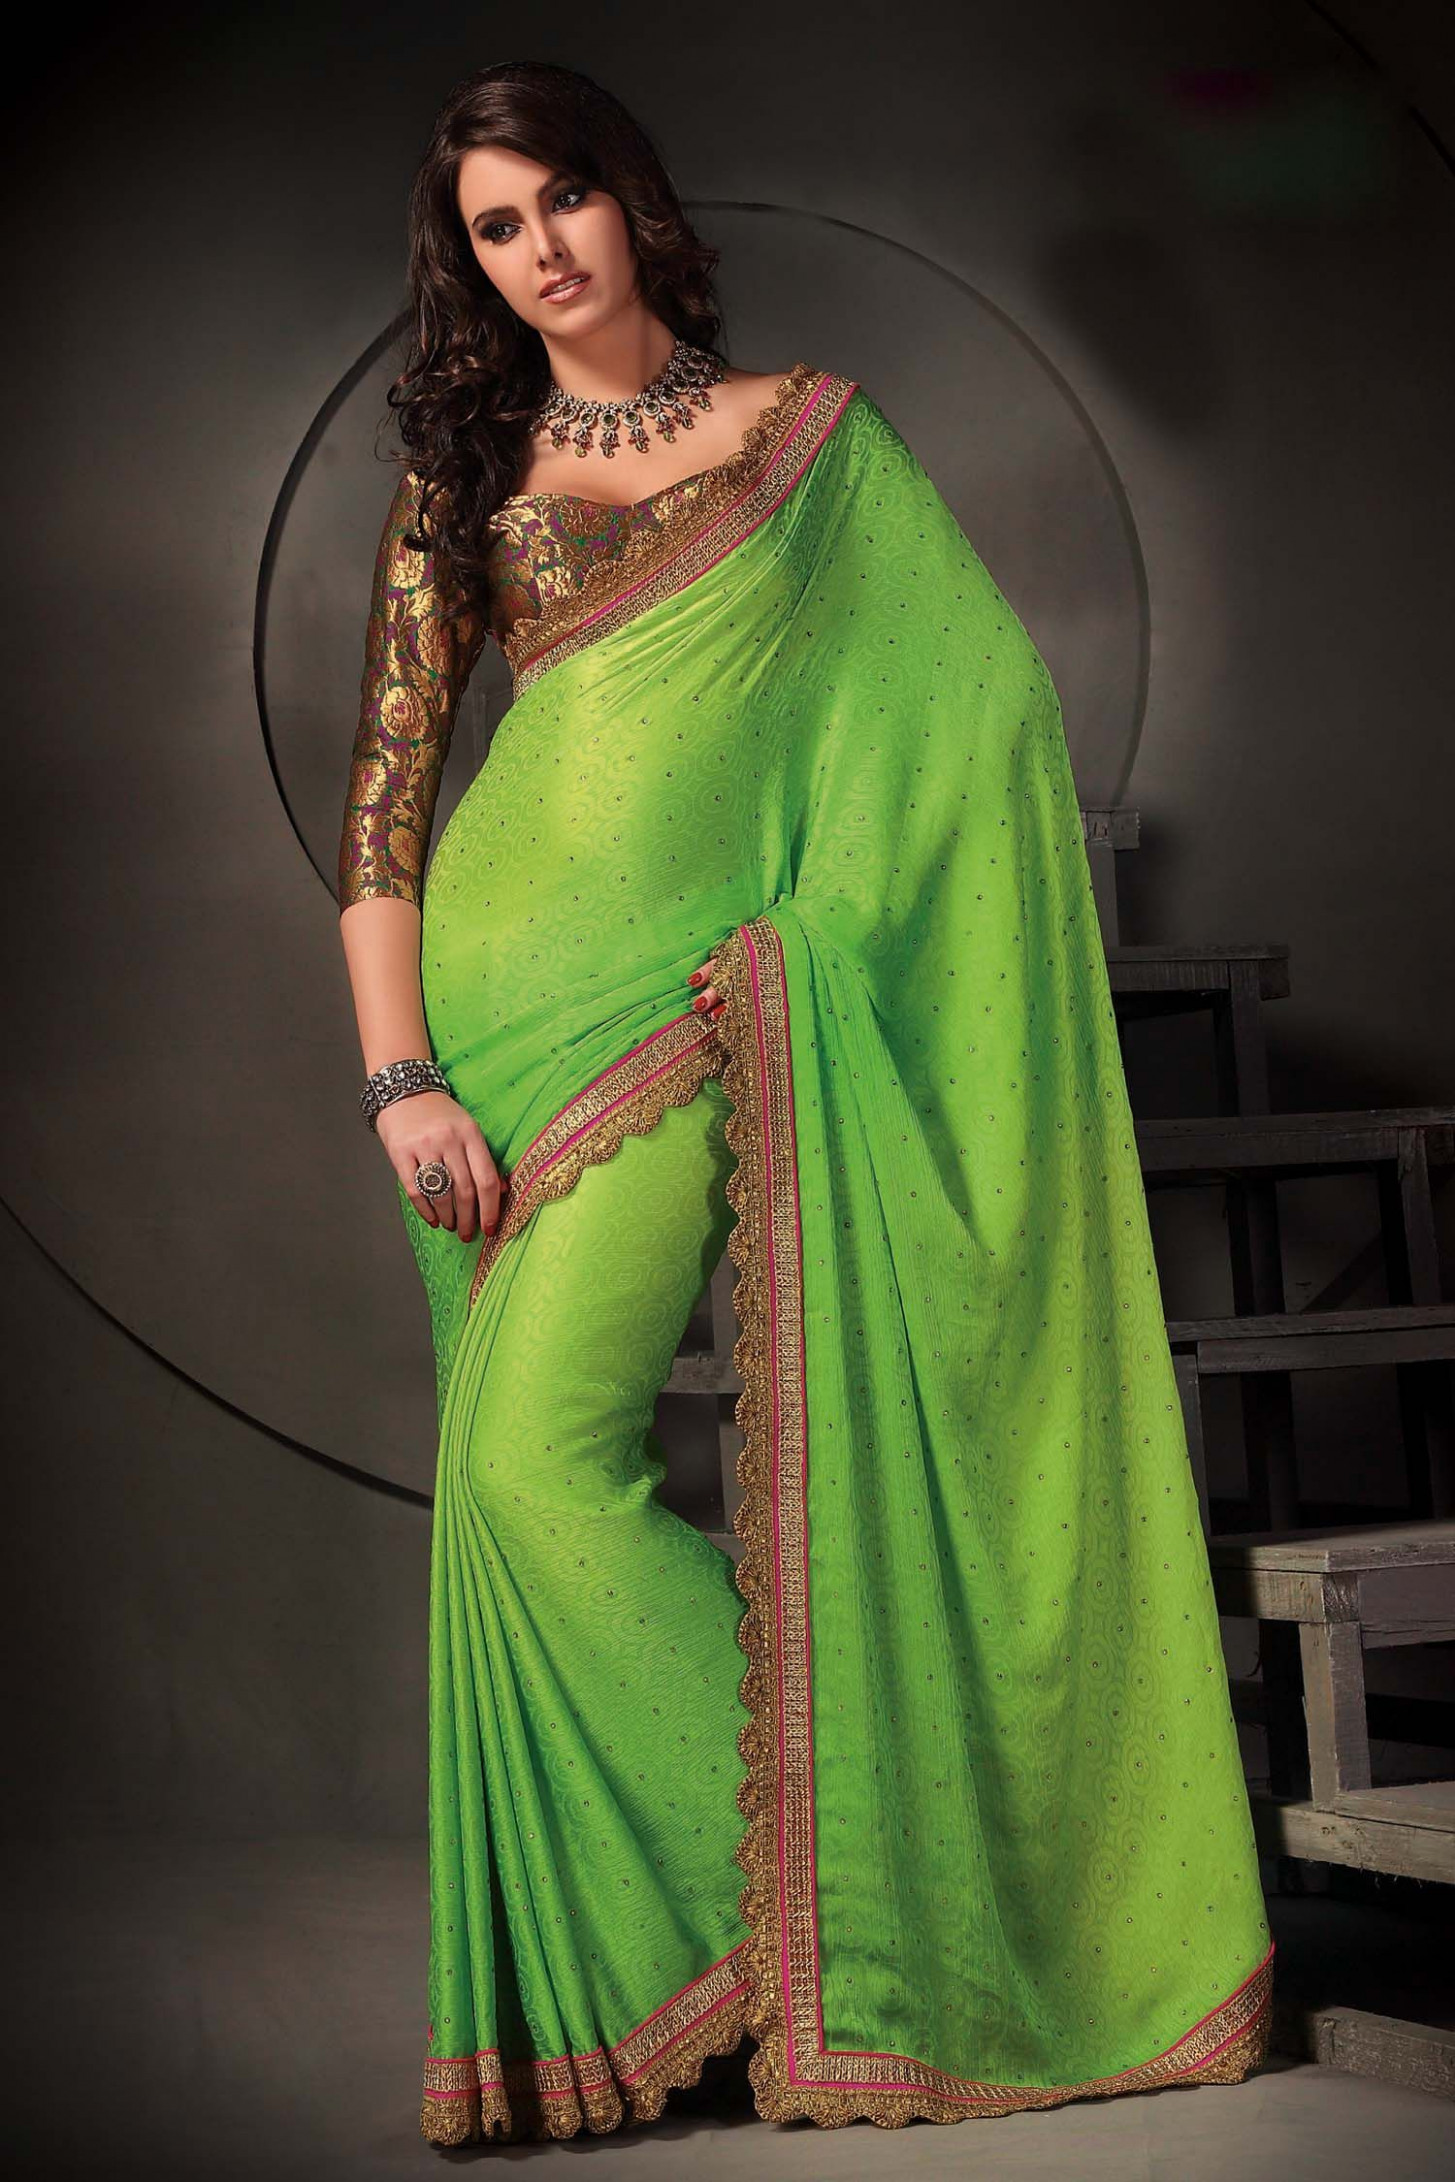 beautiful bright lime green saree with brass accents